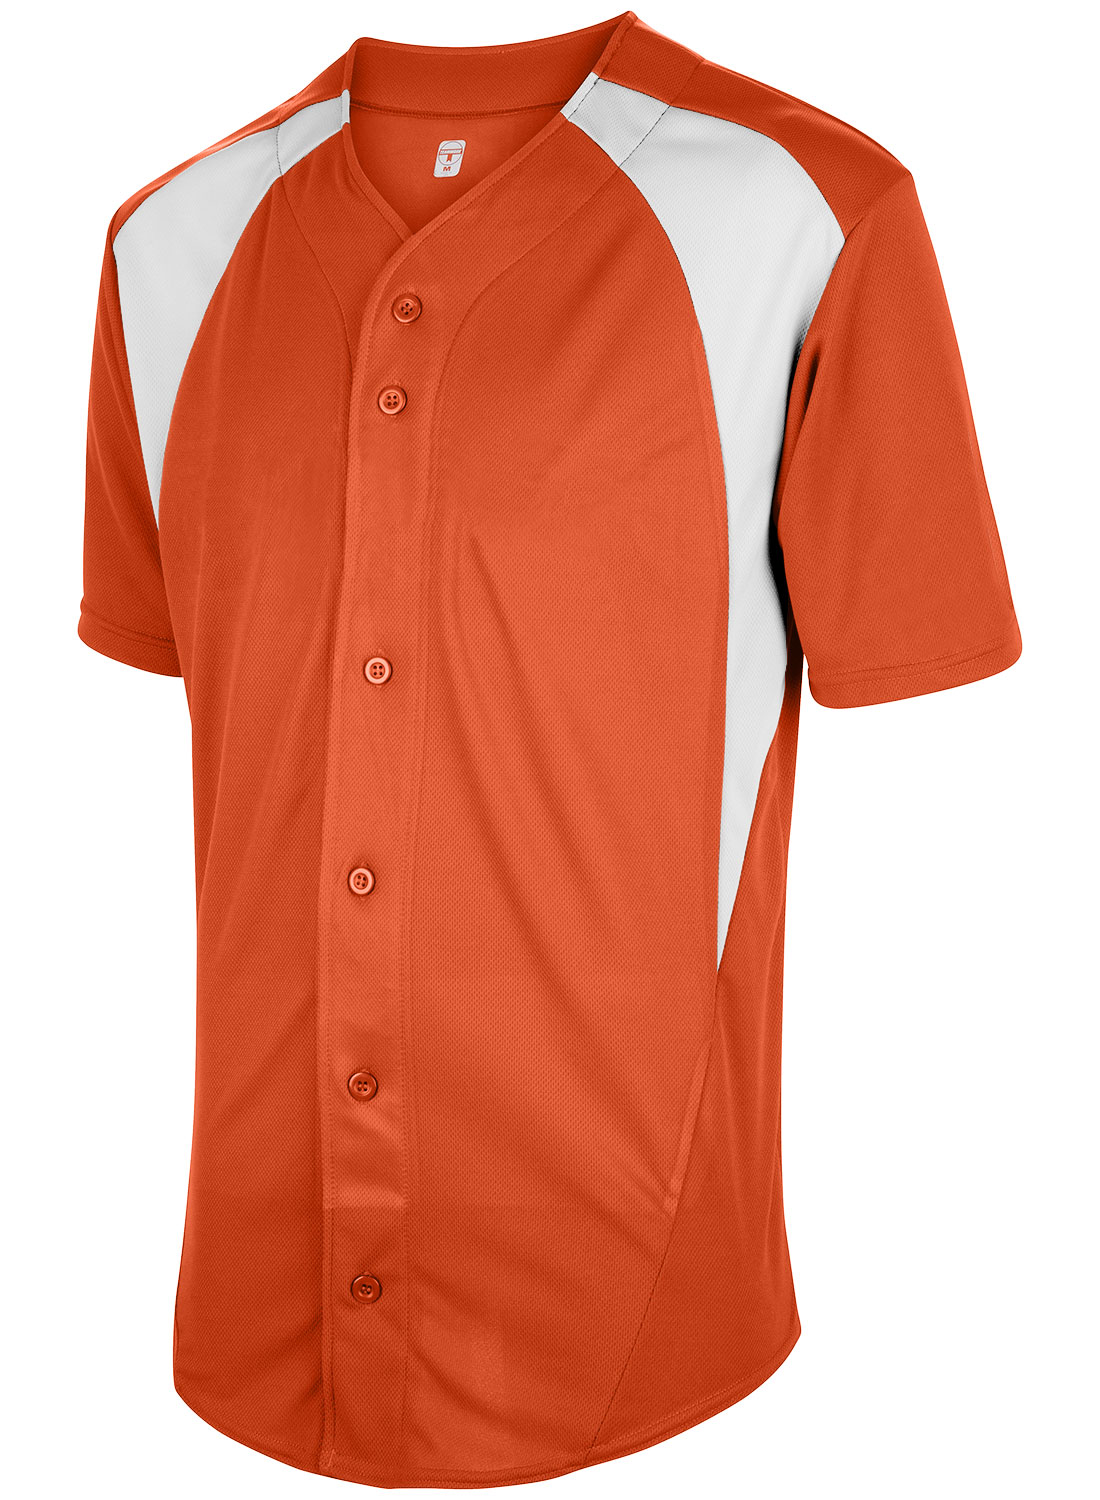 Teamwork Adult Cutoff Full Button Baseball Jersey - CLOSEOUT